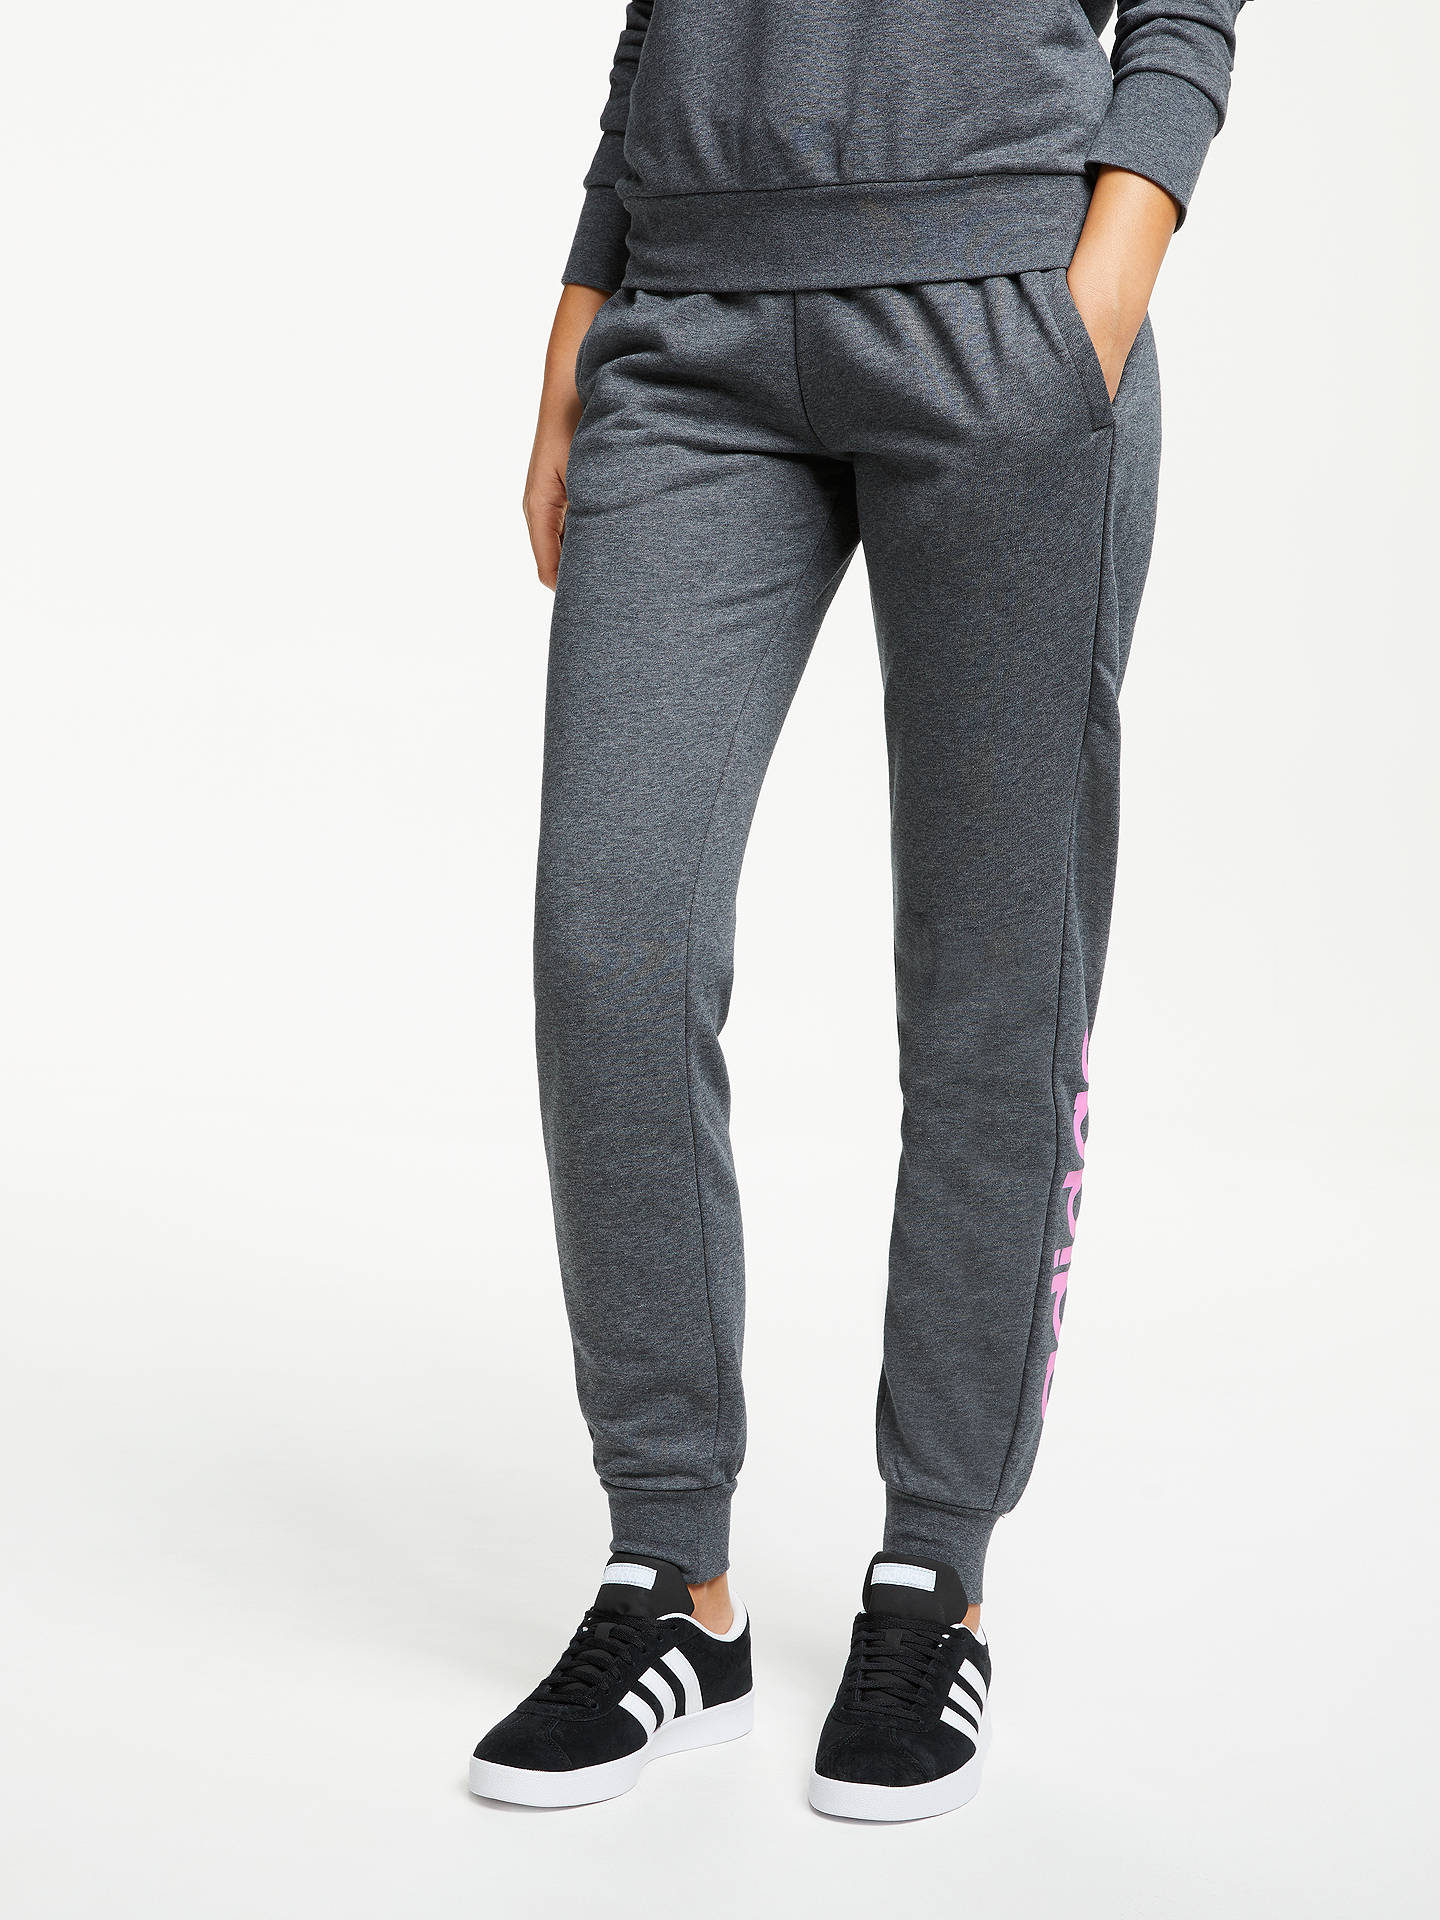 fd7c02a788e adidas Essentials Linear Tracksuit Bottoms at John Lewis   Partners